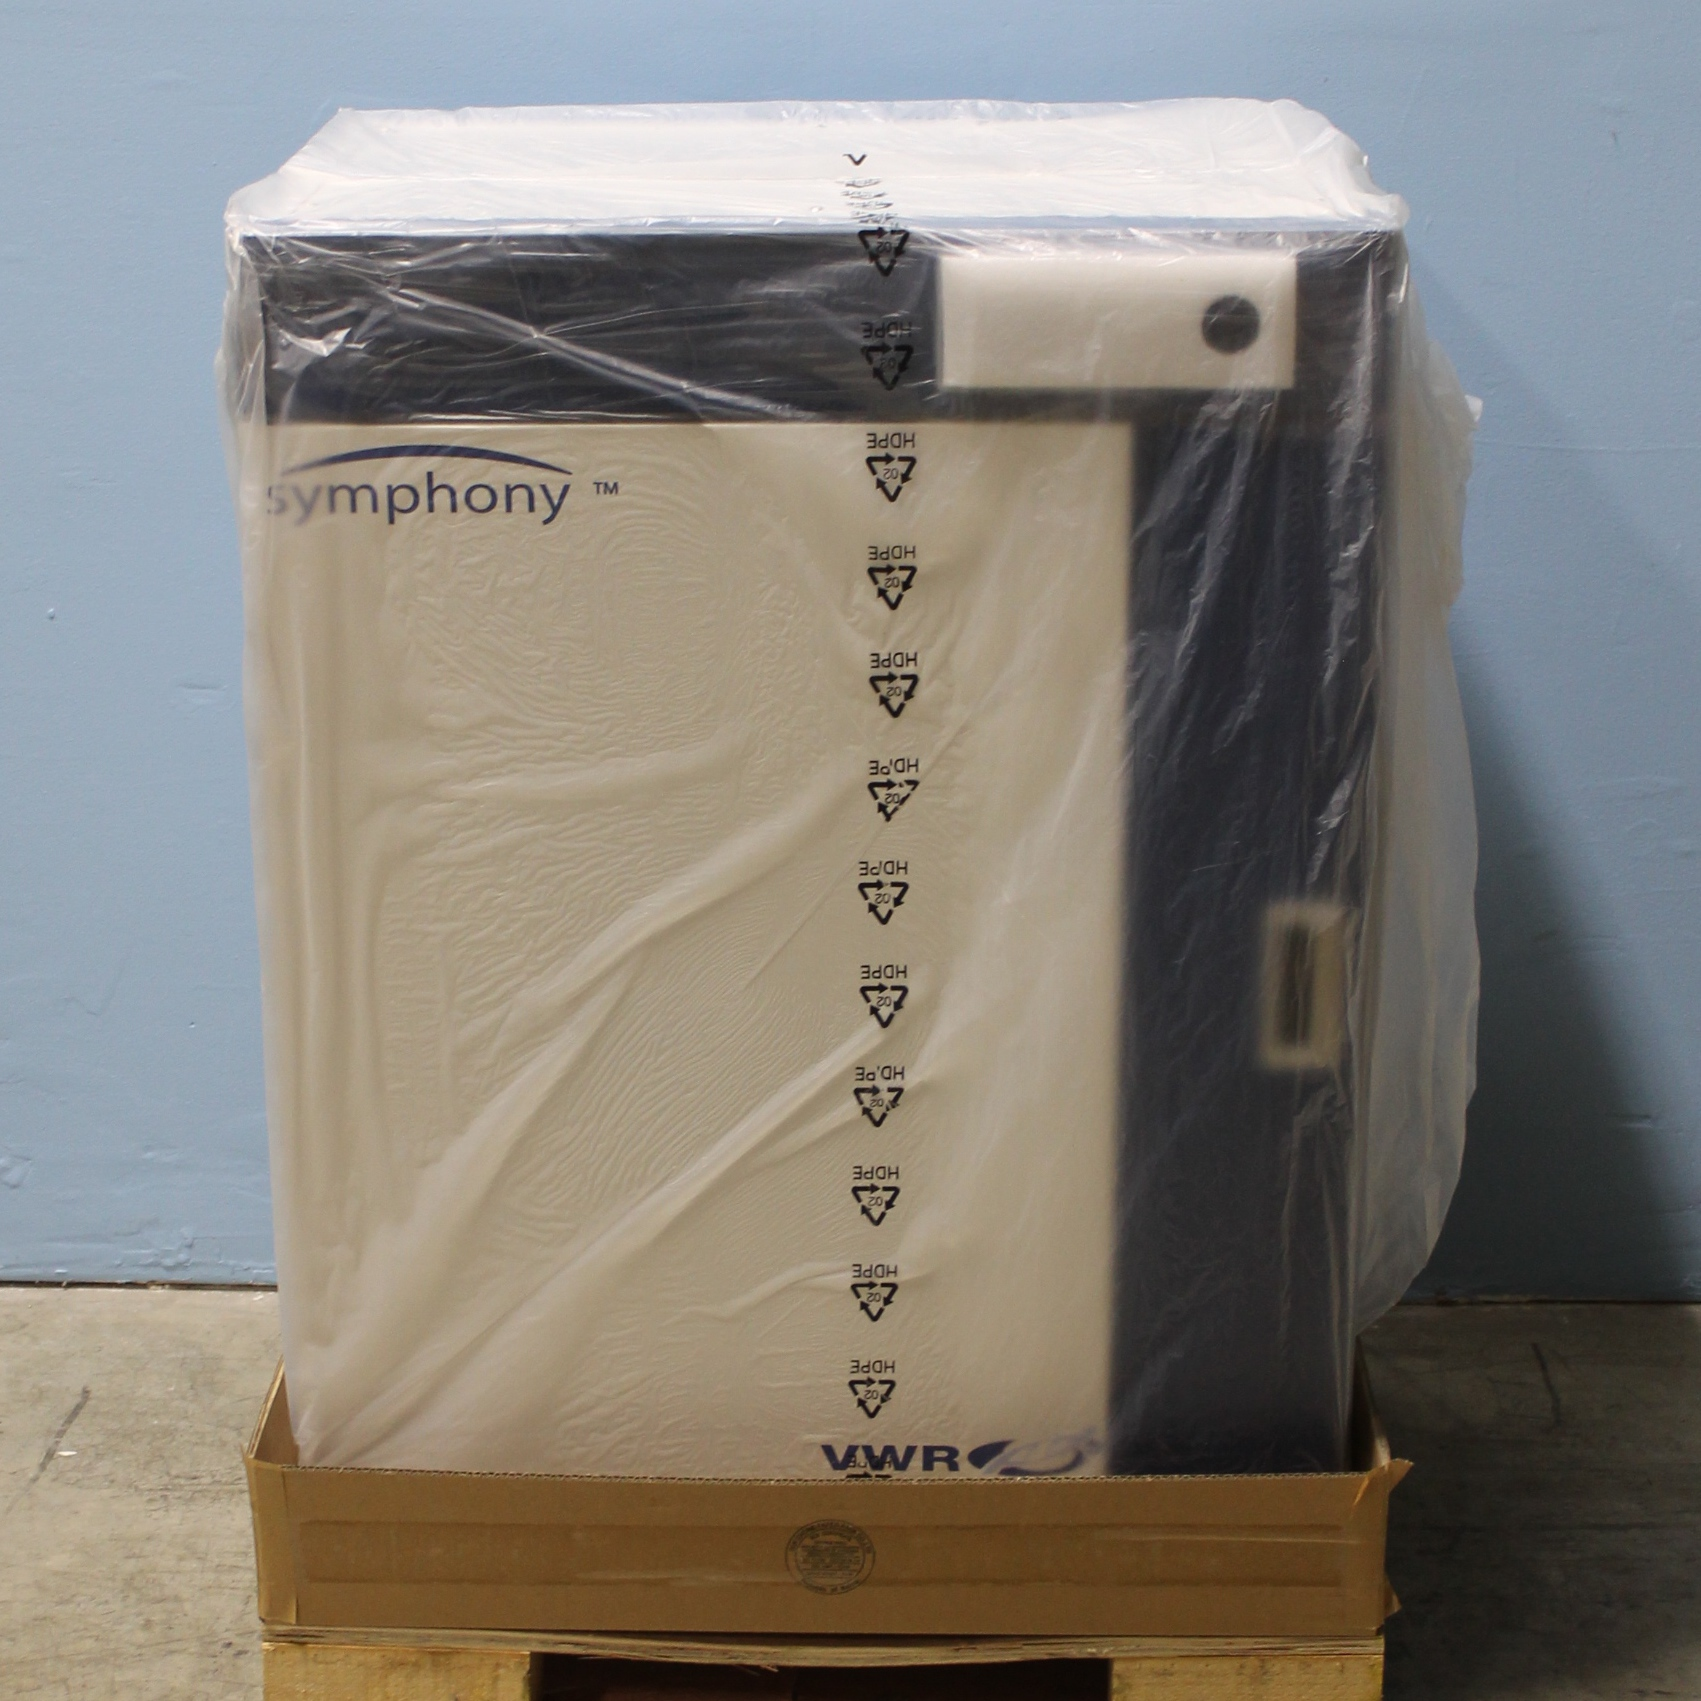 VWR Scientific Symphony 414004-616 Gravity Convection General Incubator Image